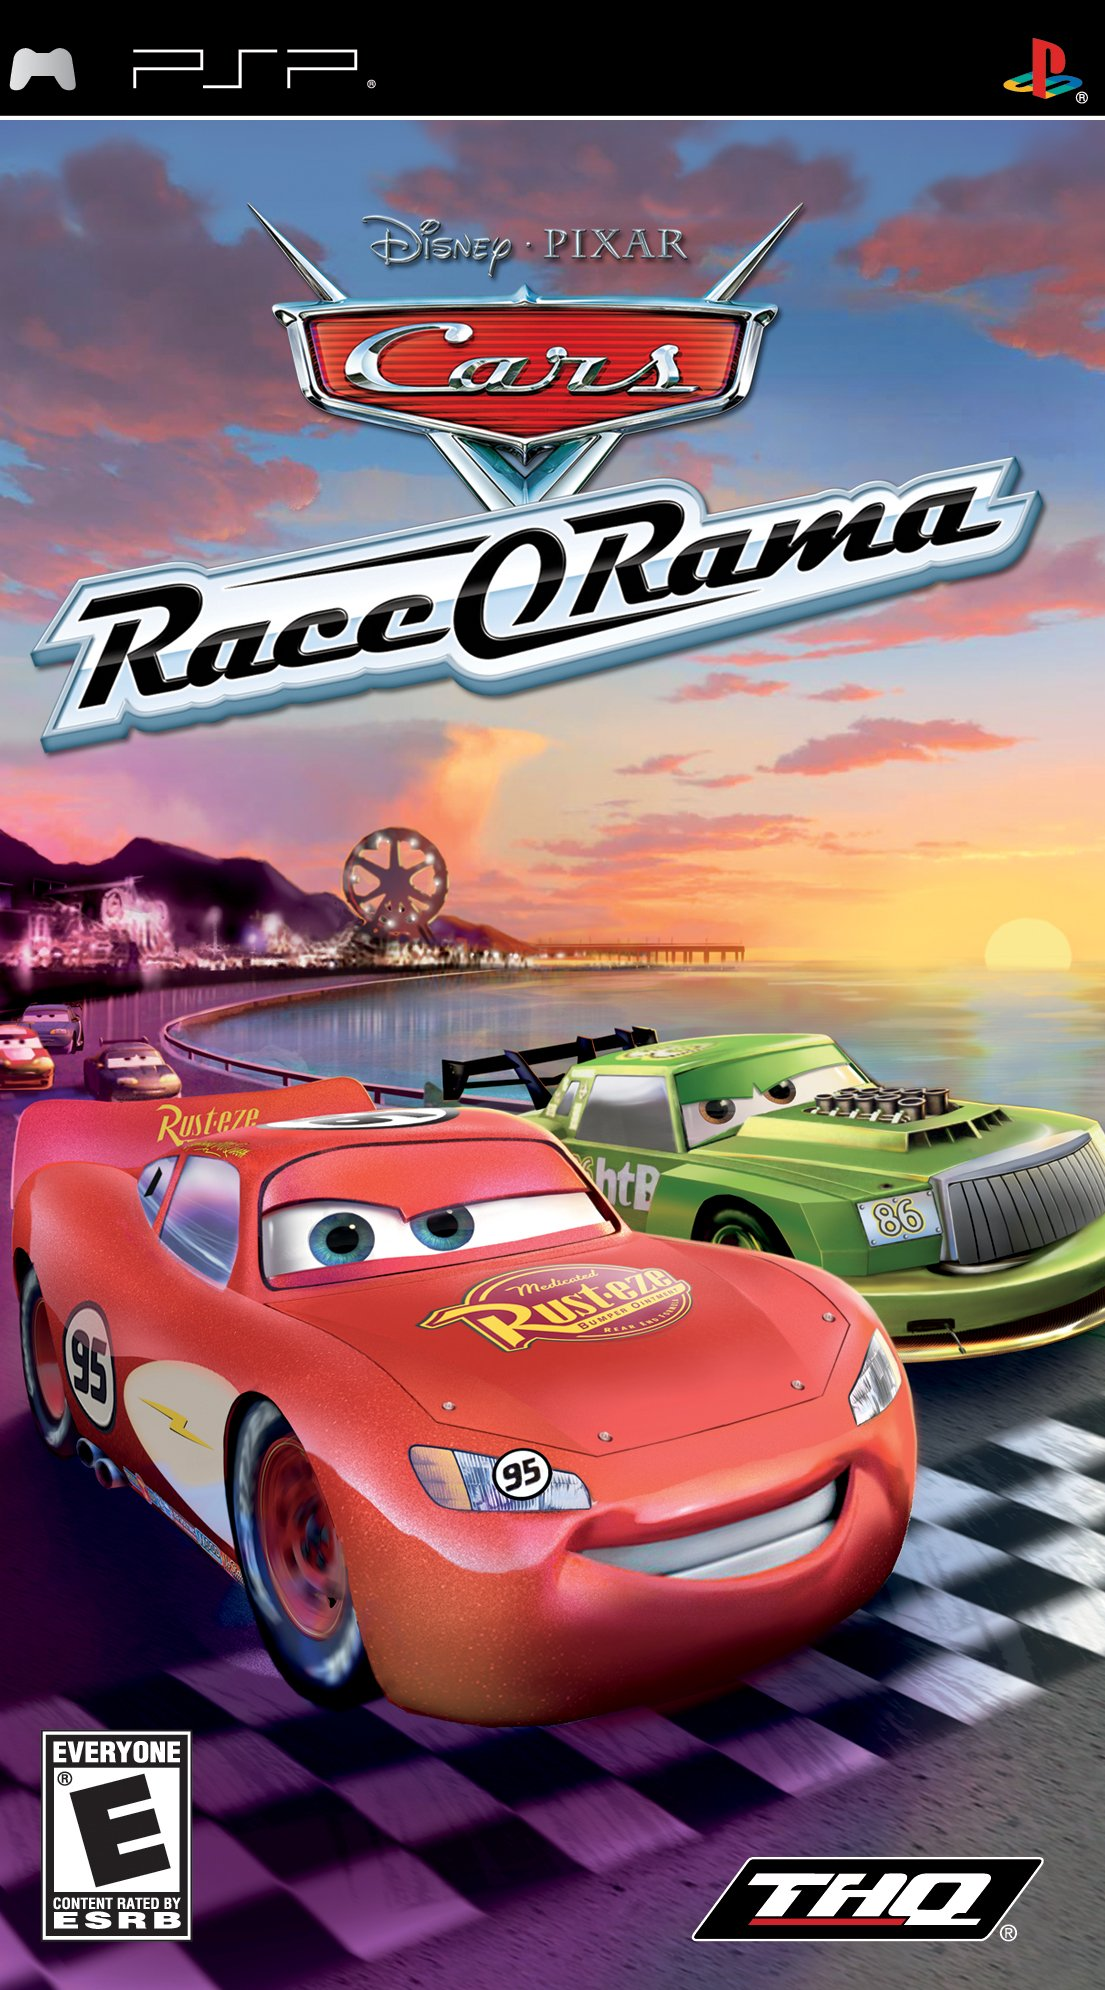 Cars Race O Rama Release Date Xbox 360 Ps3 Wii Psp Ds